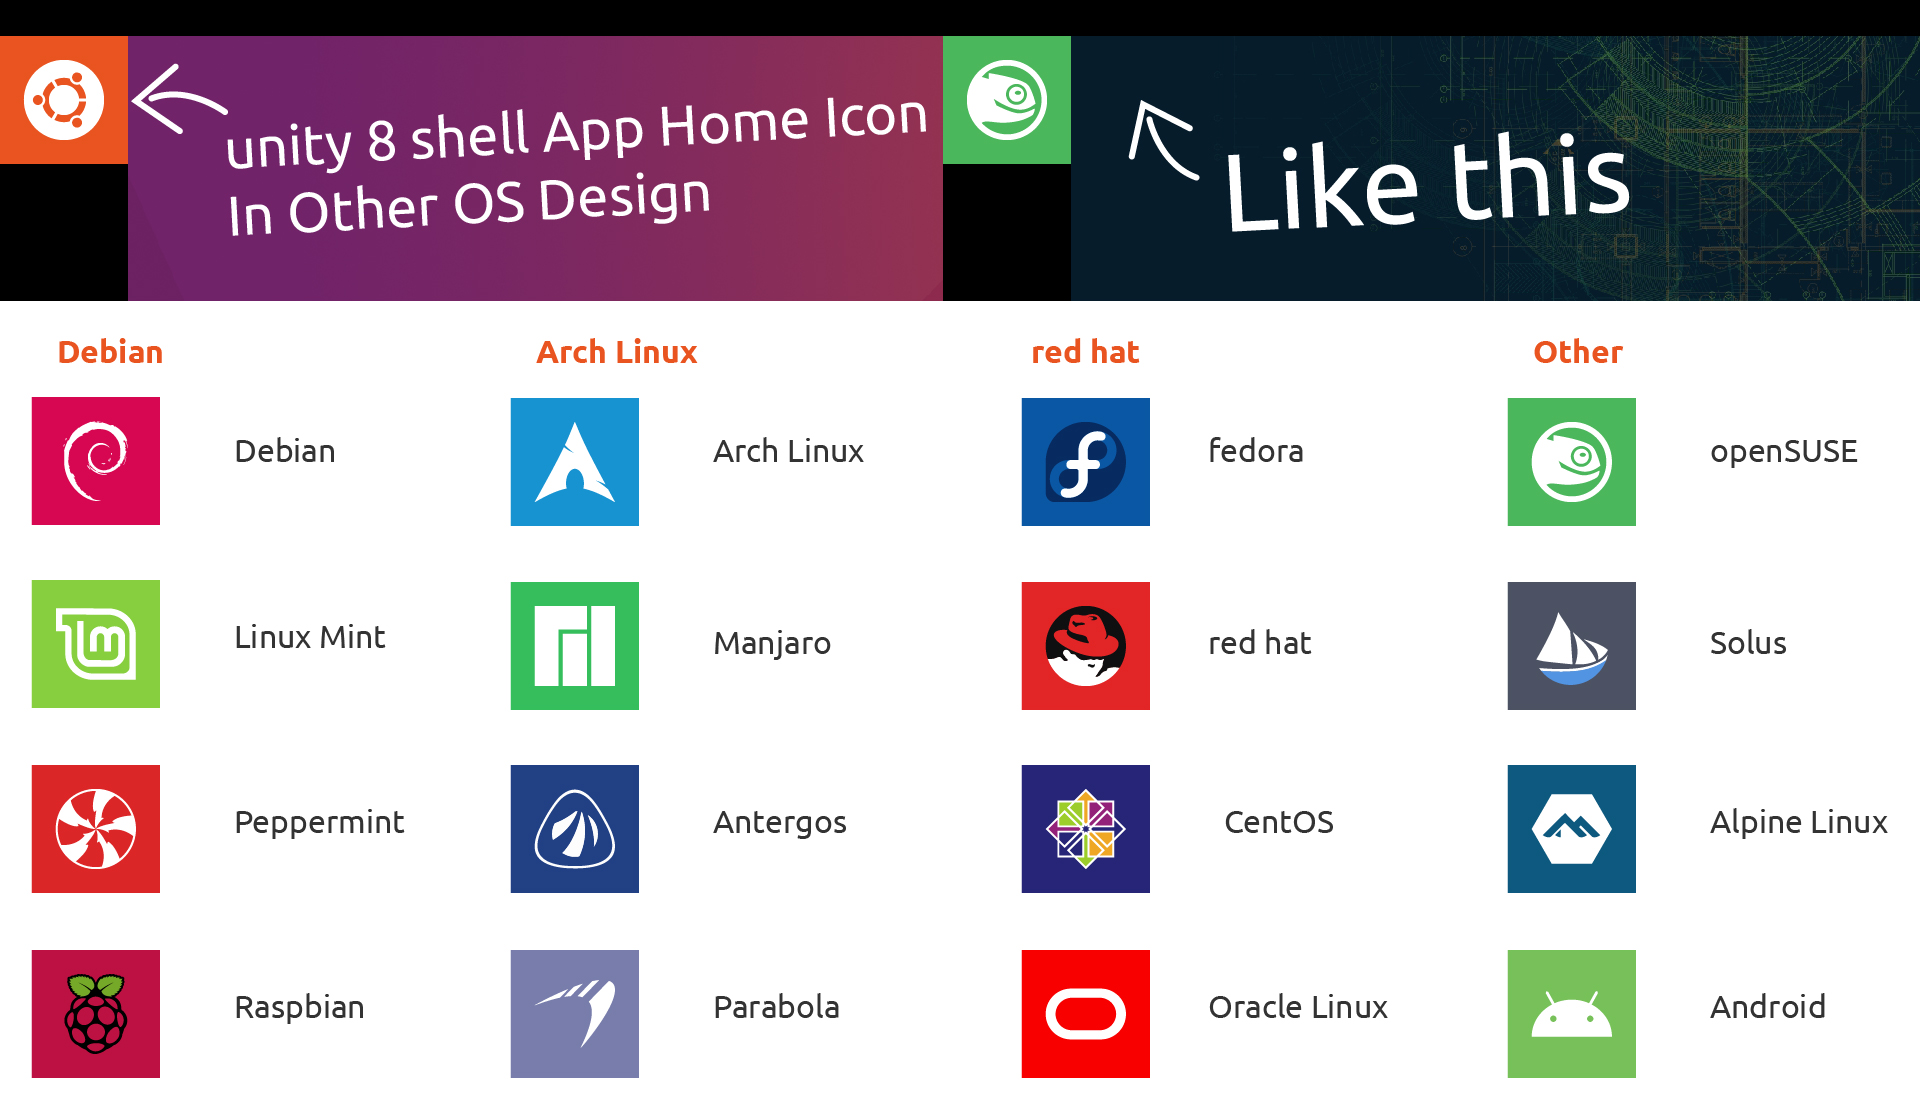 Default App Home Icon In Other OS Design | UBports Forum